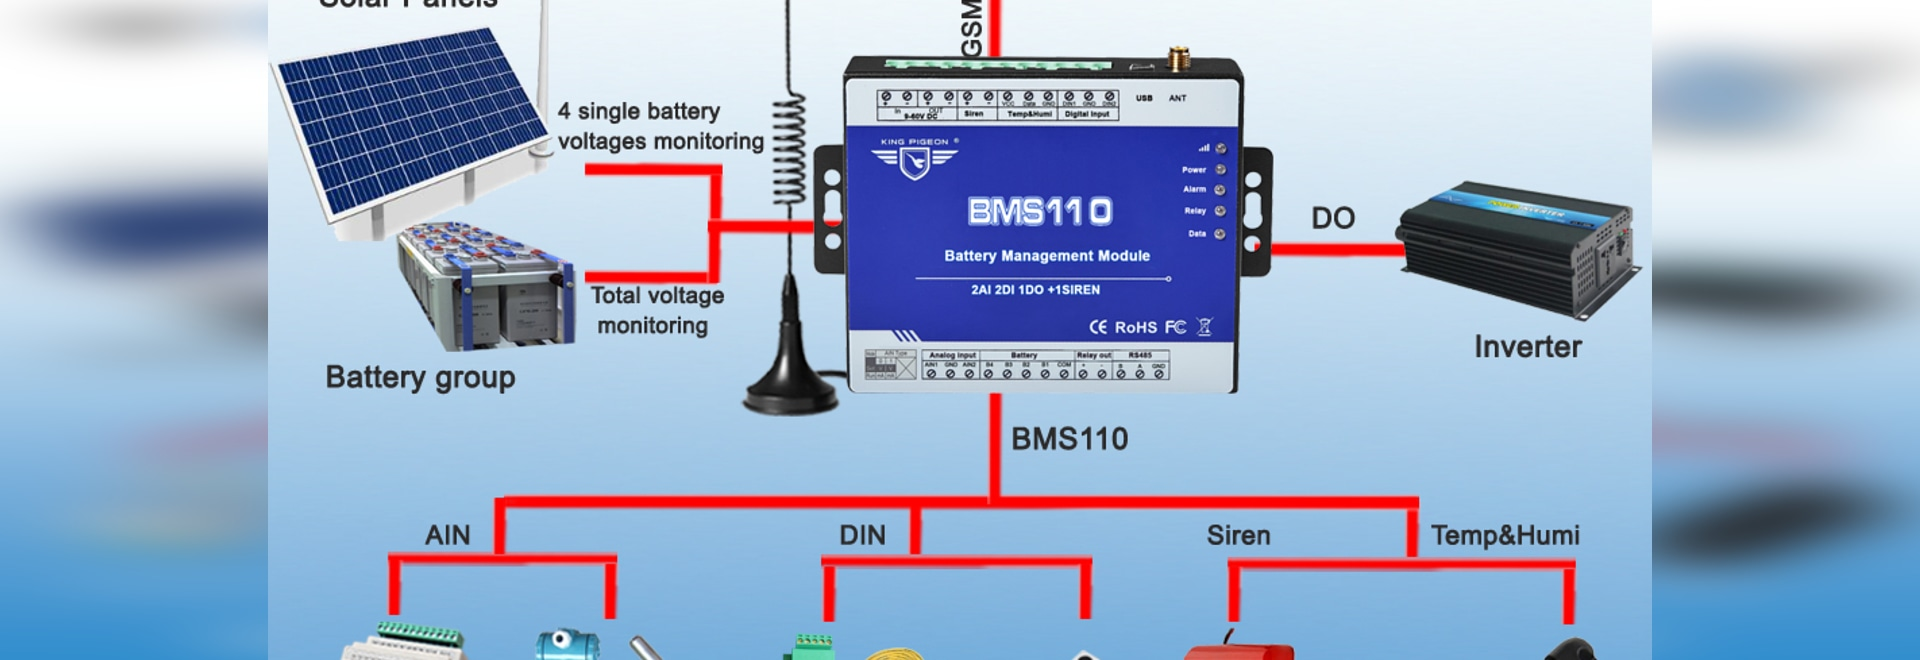 King Pigeon Small Battery Bank Monitoring System BMS110